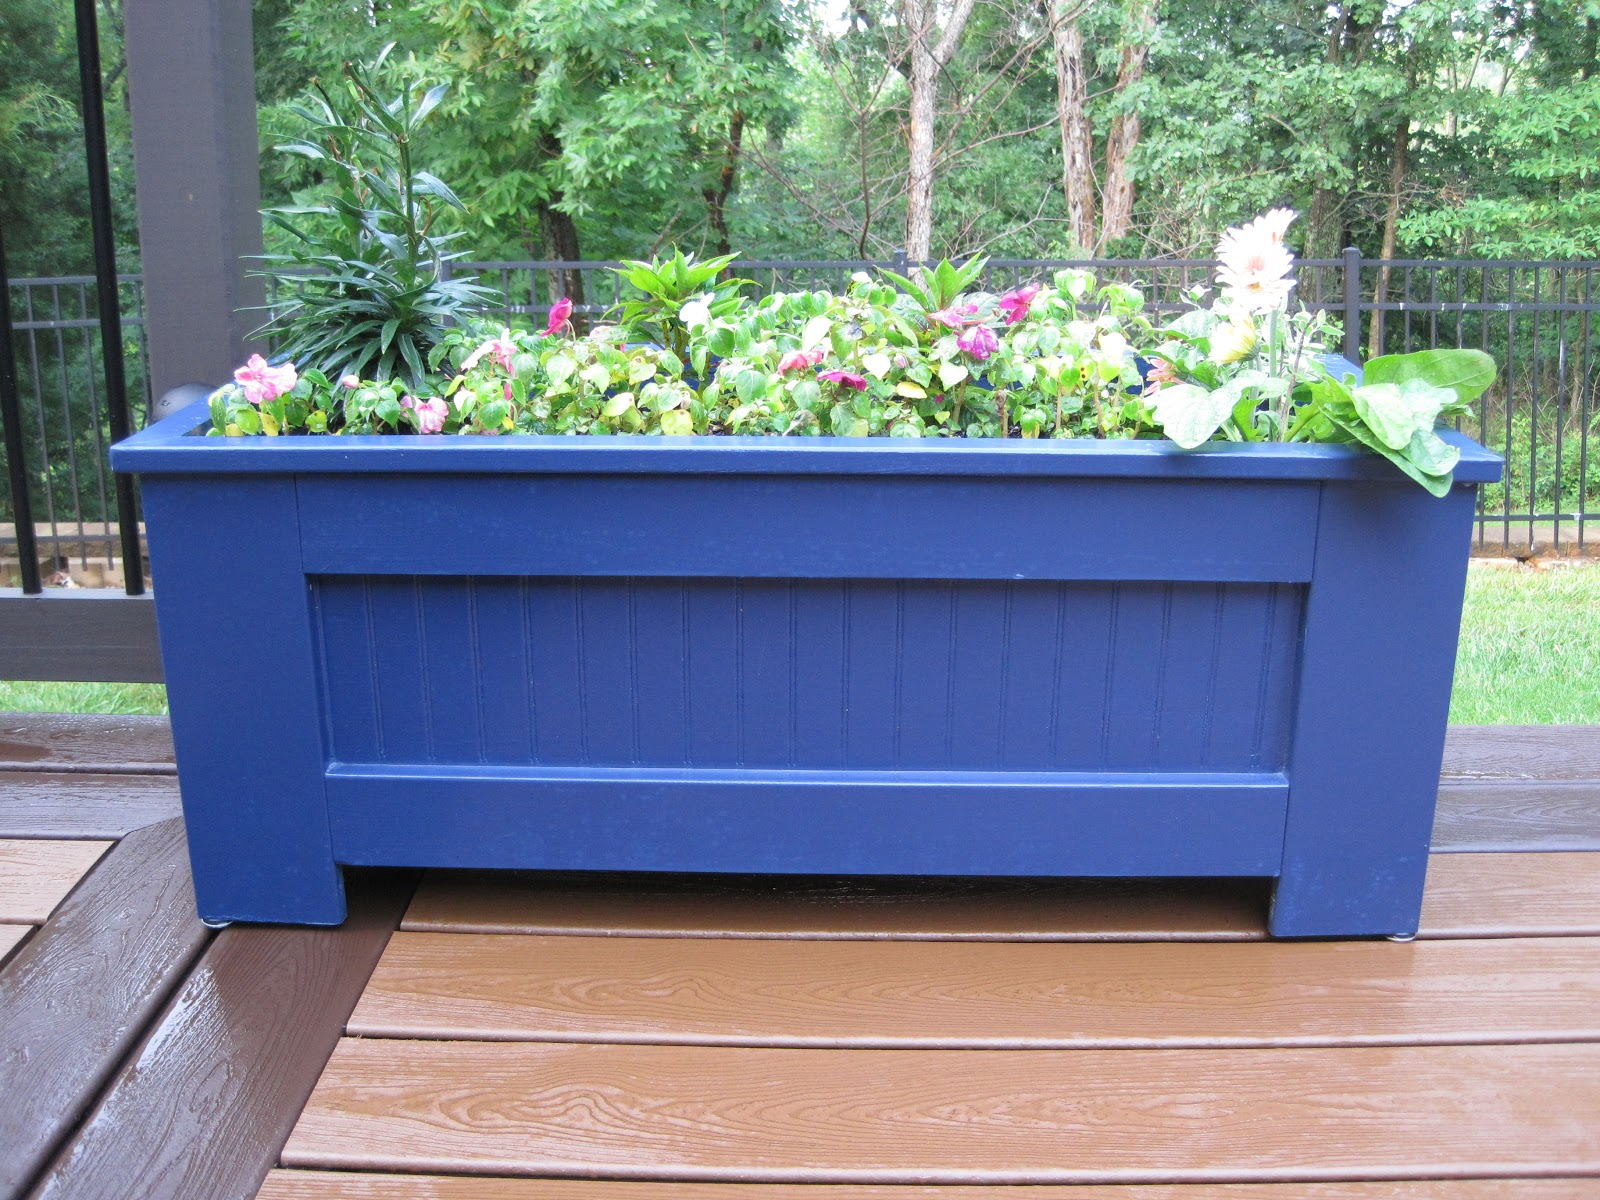 Diy Deck Flower Boxes Saved By Grace Diy Planter Boxes